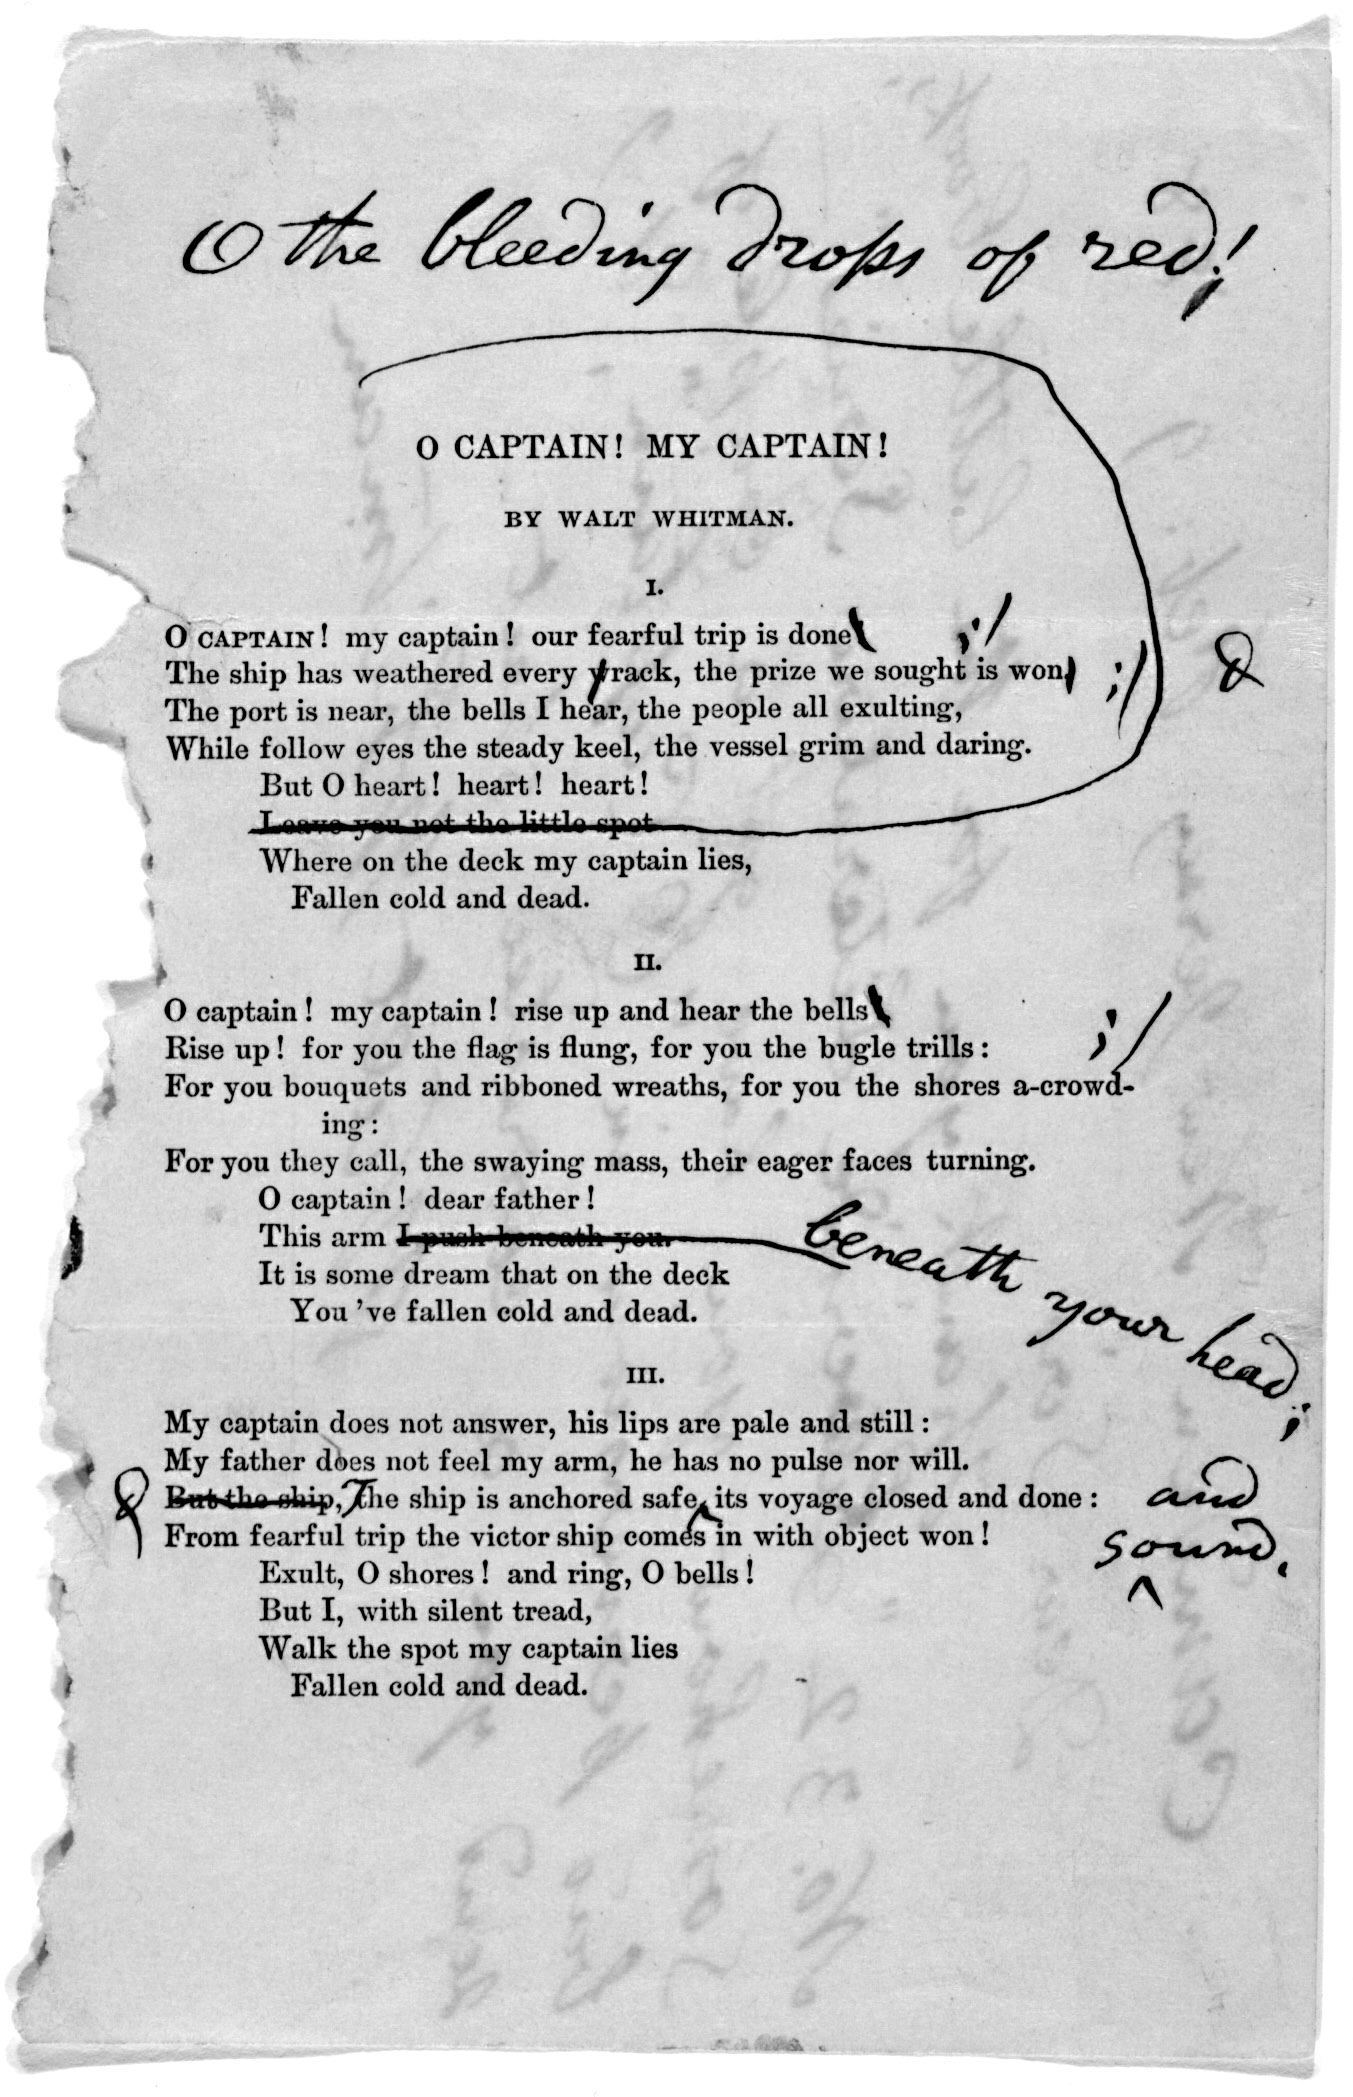 an overview of the walt whitmans poem oh captain my captain Walt whitman was born on may 31, 1819, in west hills, new york, the second son of walter whitman, a housebuilder, and louisa van velsor the family, which consisted of nine children, lived in brooklyn and long island in the 1820s and 1830s.